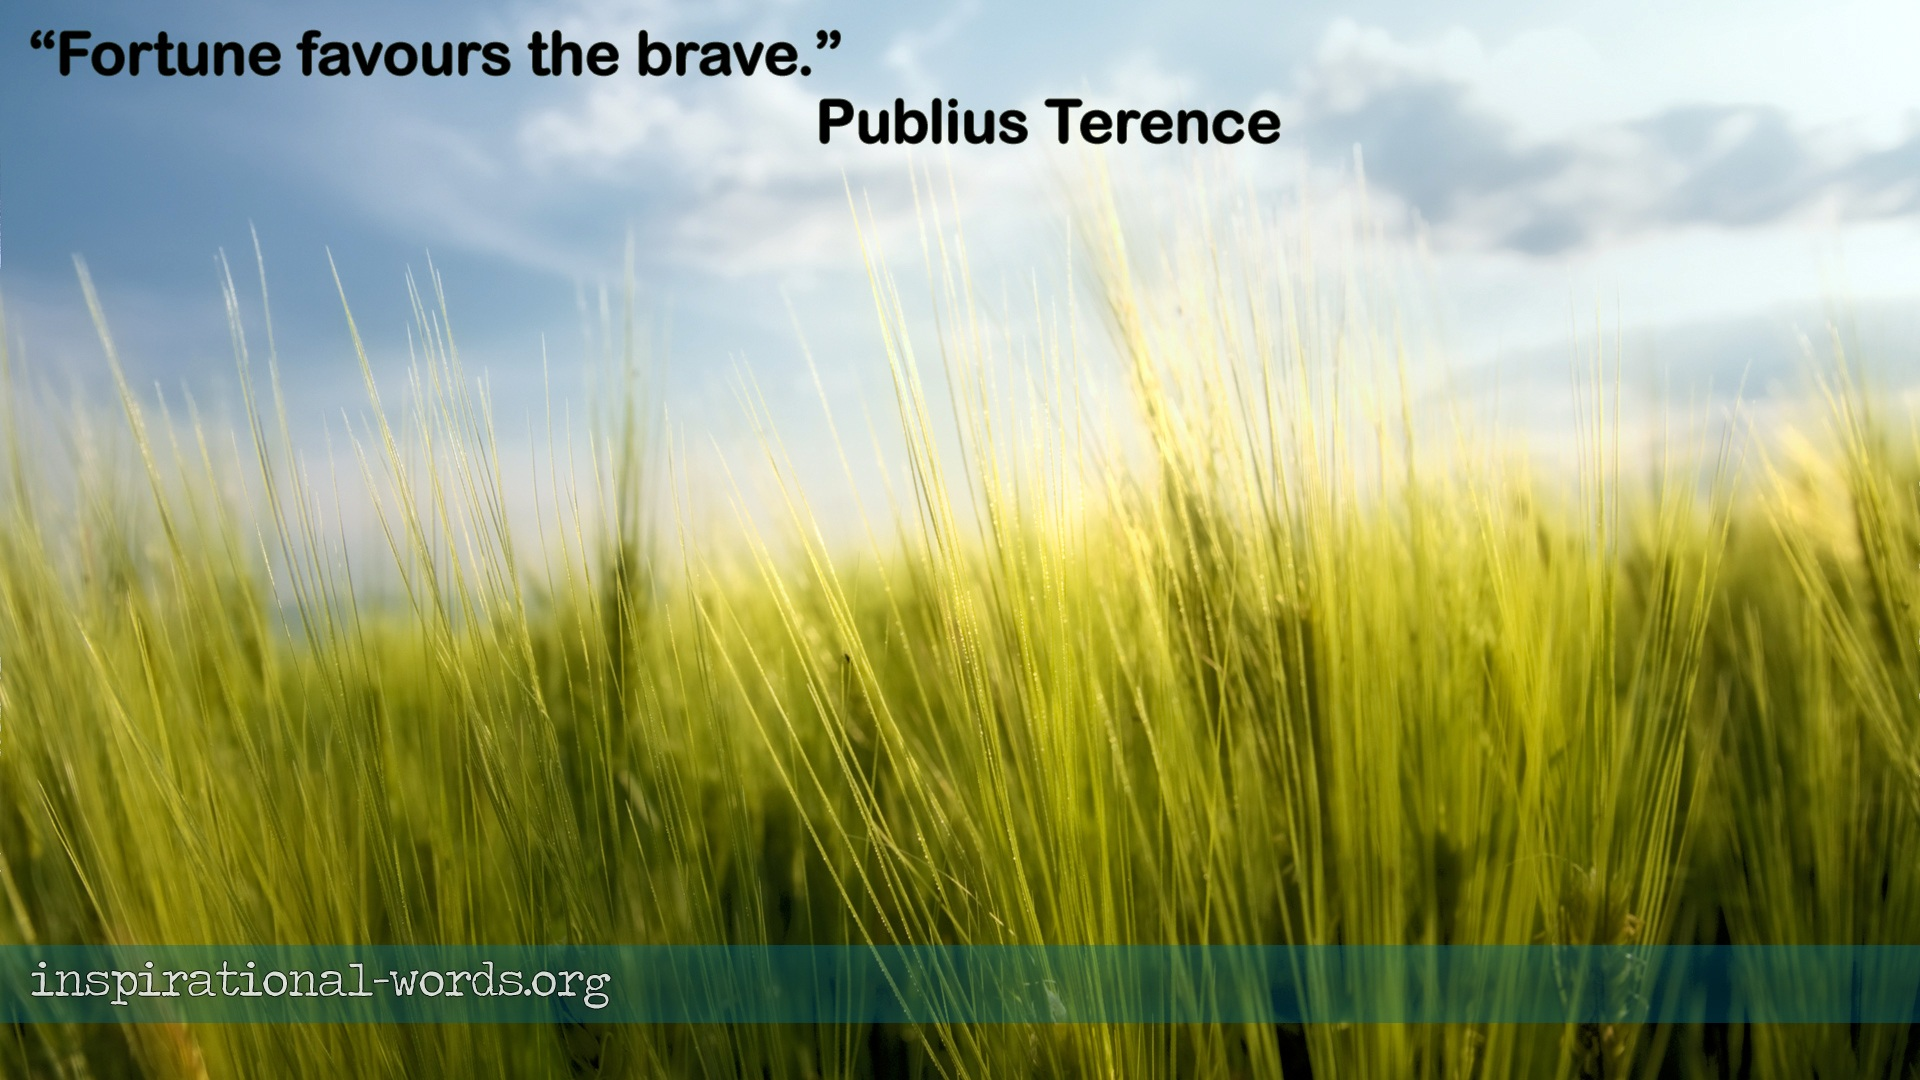 Publius Terence inspirational wallpaper